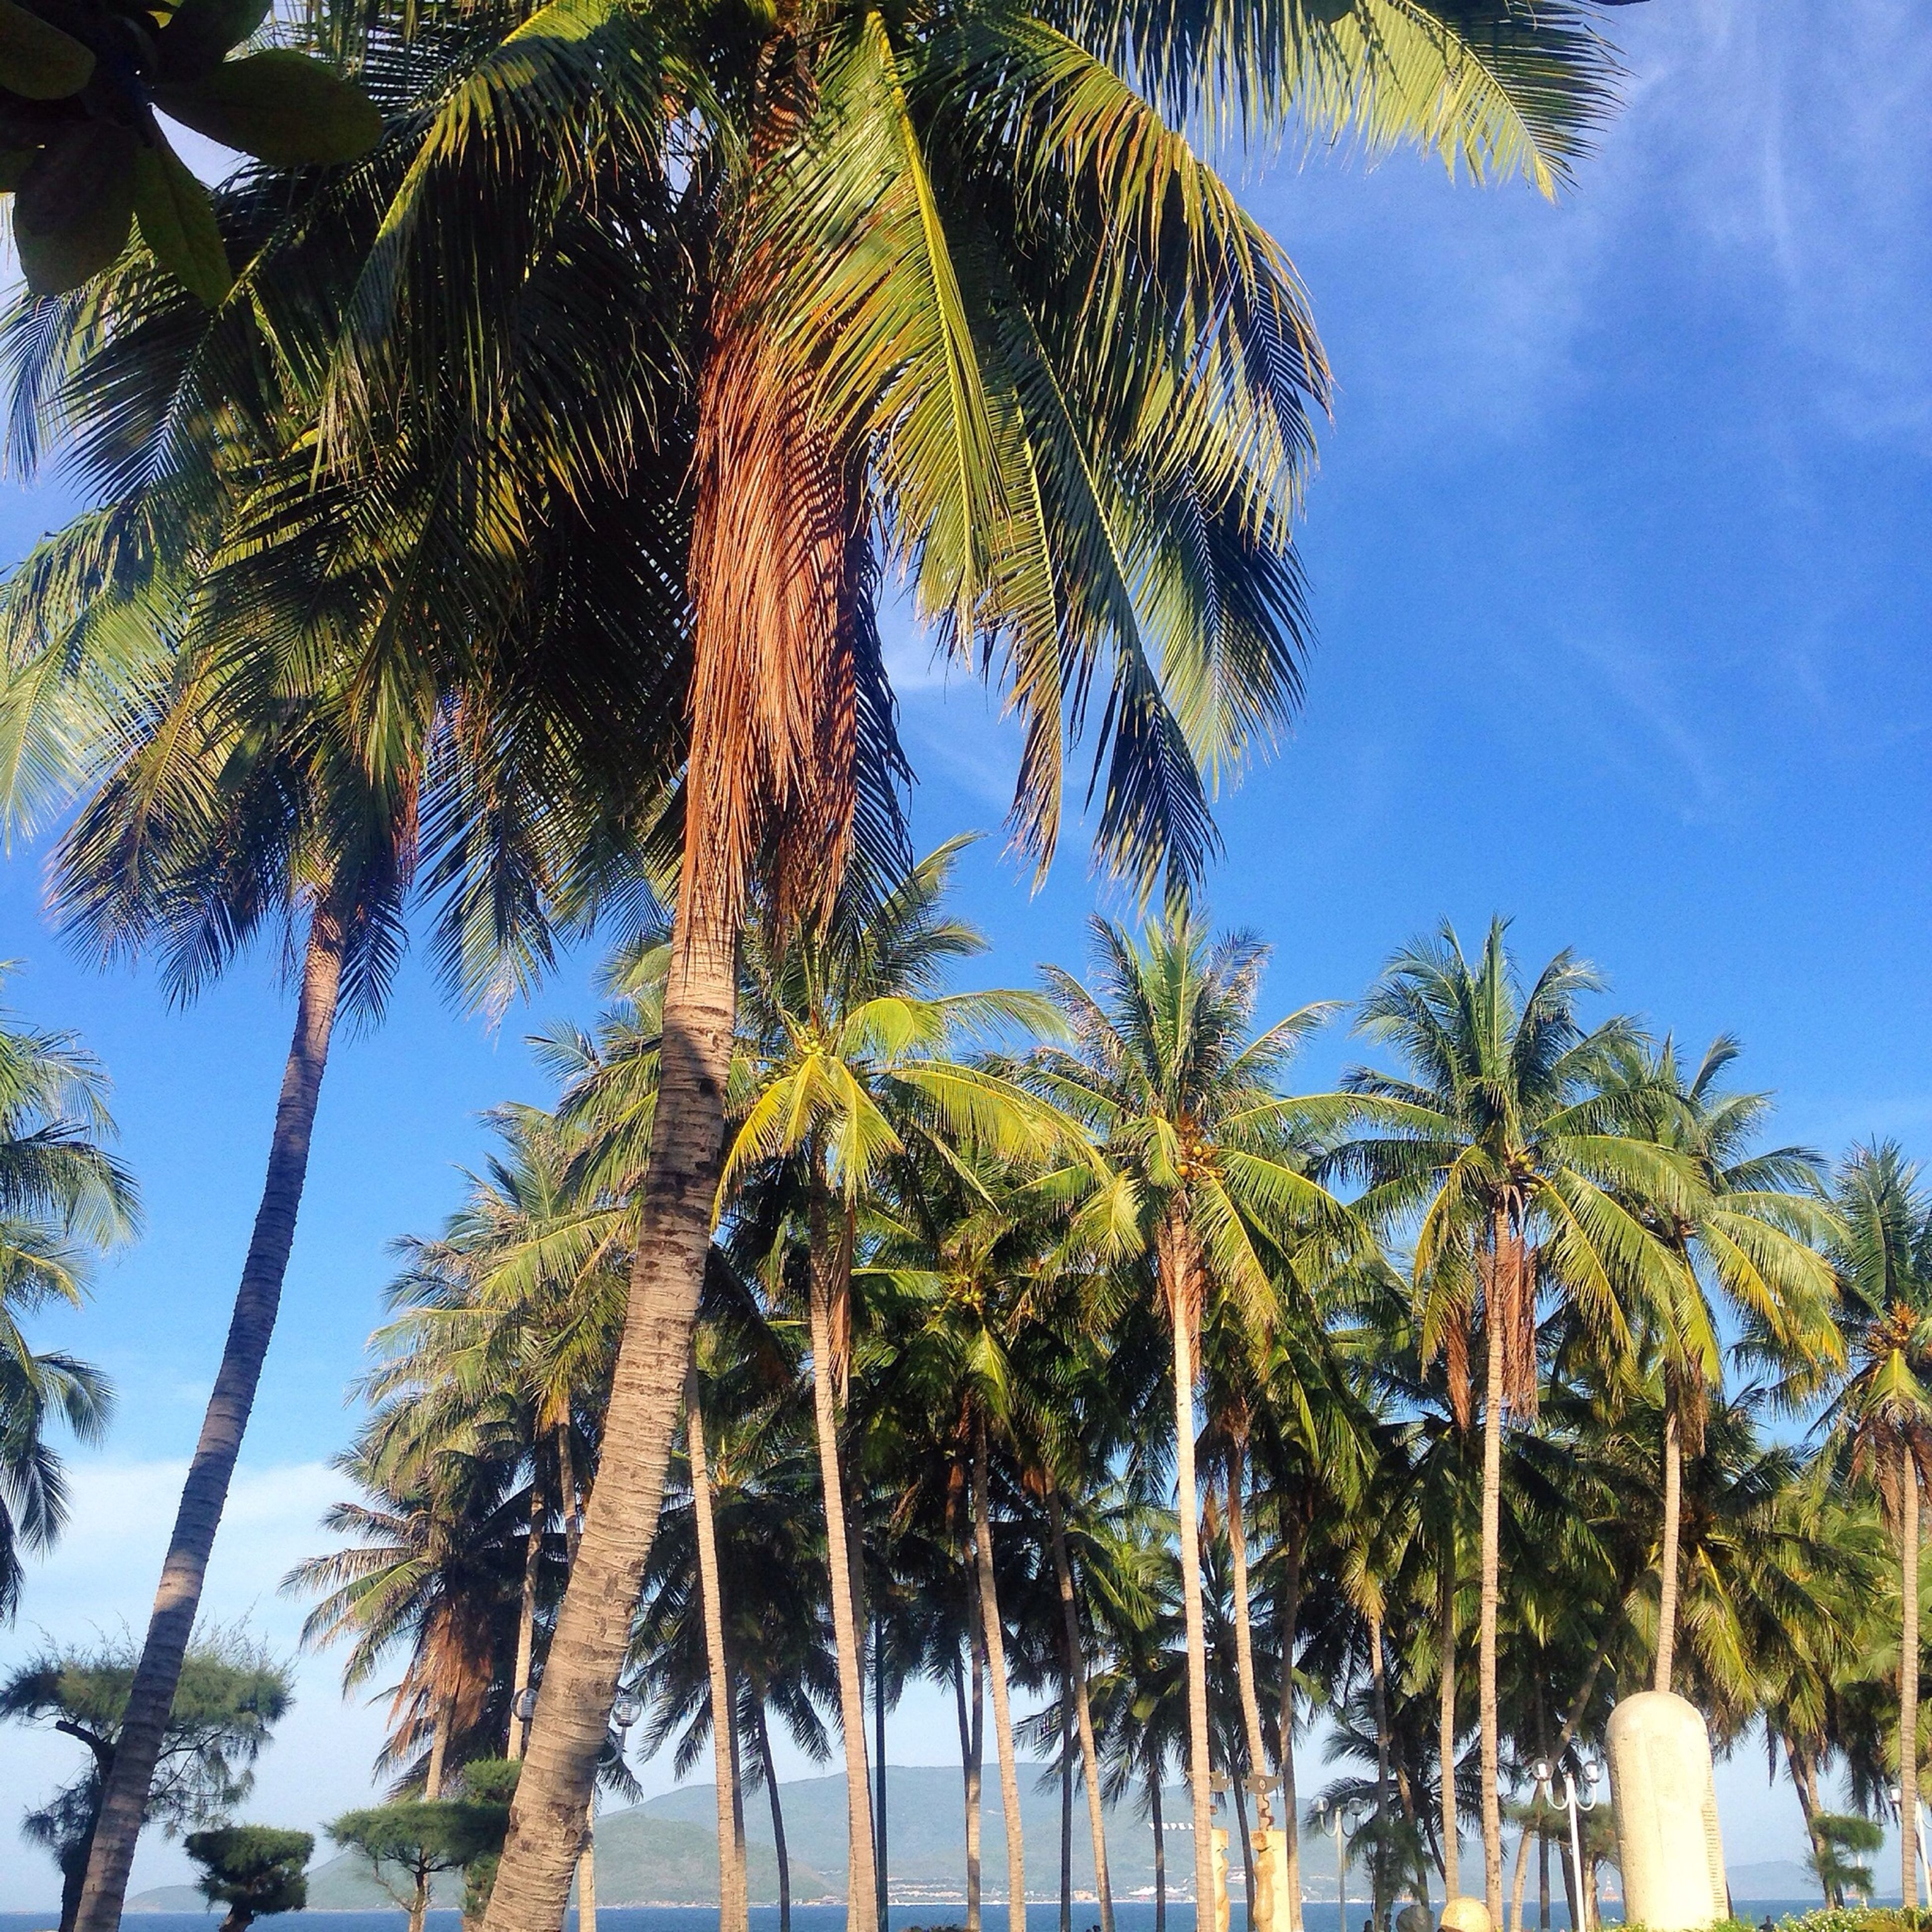 tree, palm tree, low angle view, growth, tranquility, sky, nature, tree trunk, beauty in nature, tranquil scene, scenics, blue, branch, coconut palm tree, day, outdoors, green color, no people, tall - high, leaf